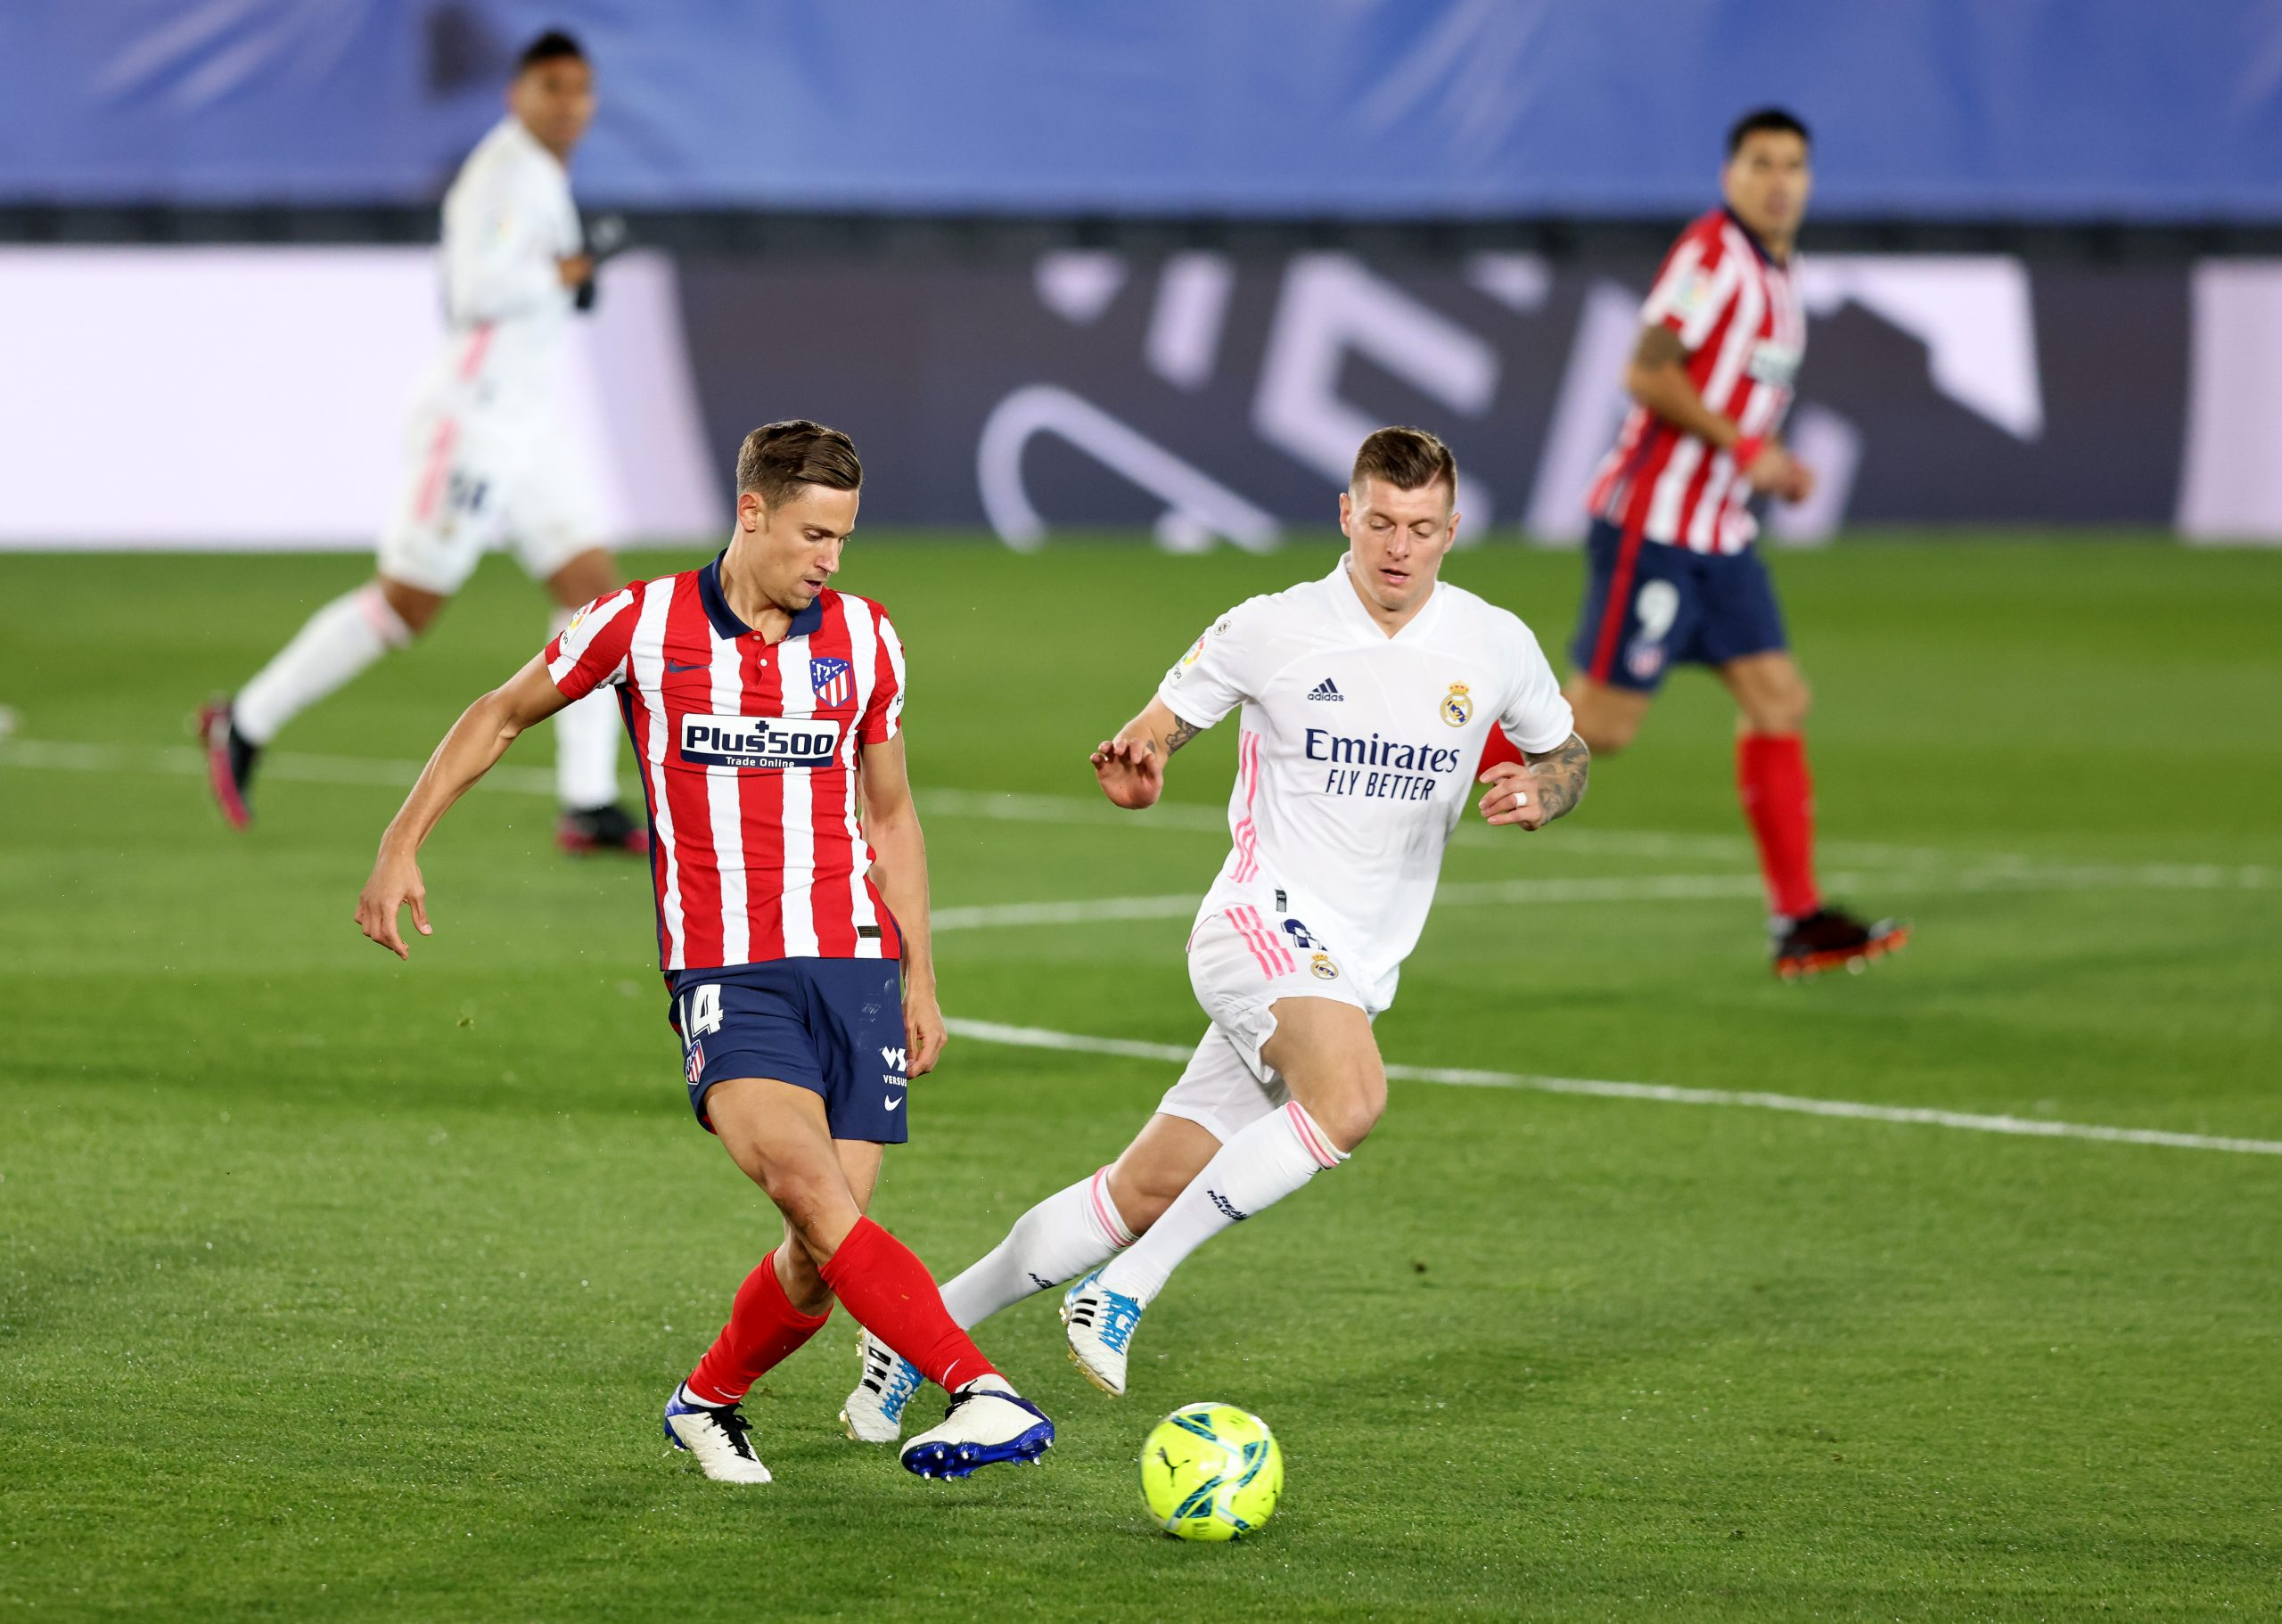 Llorente in action against Real Madrid in la Liga. (GETTY Images)